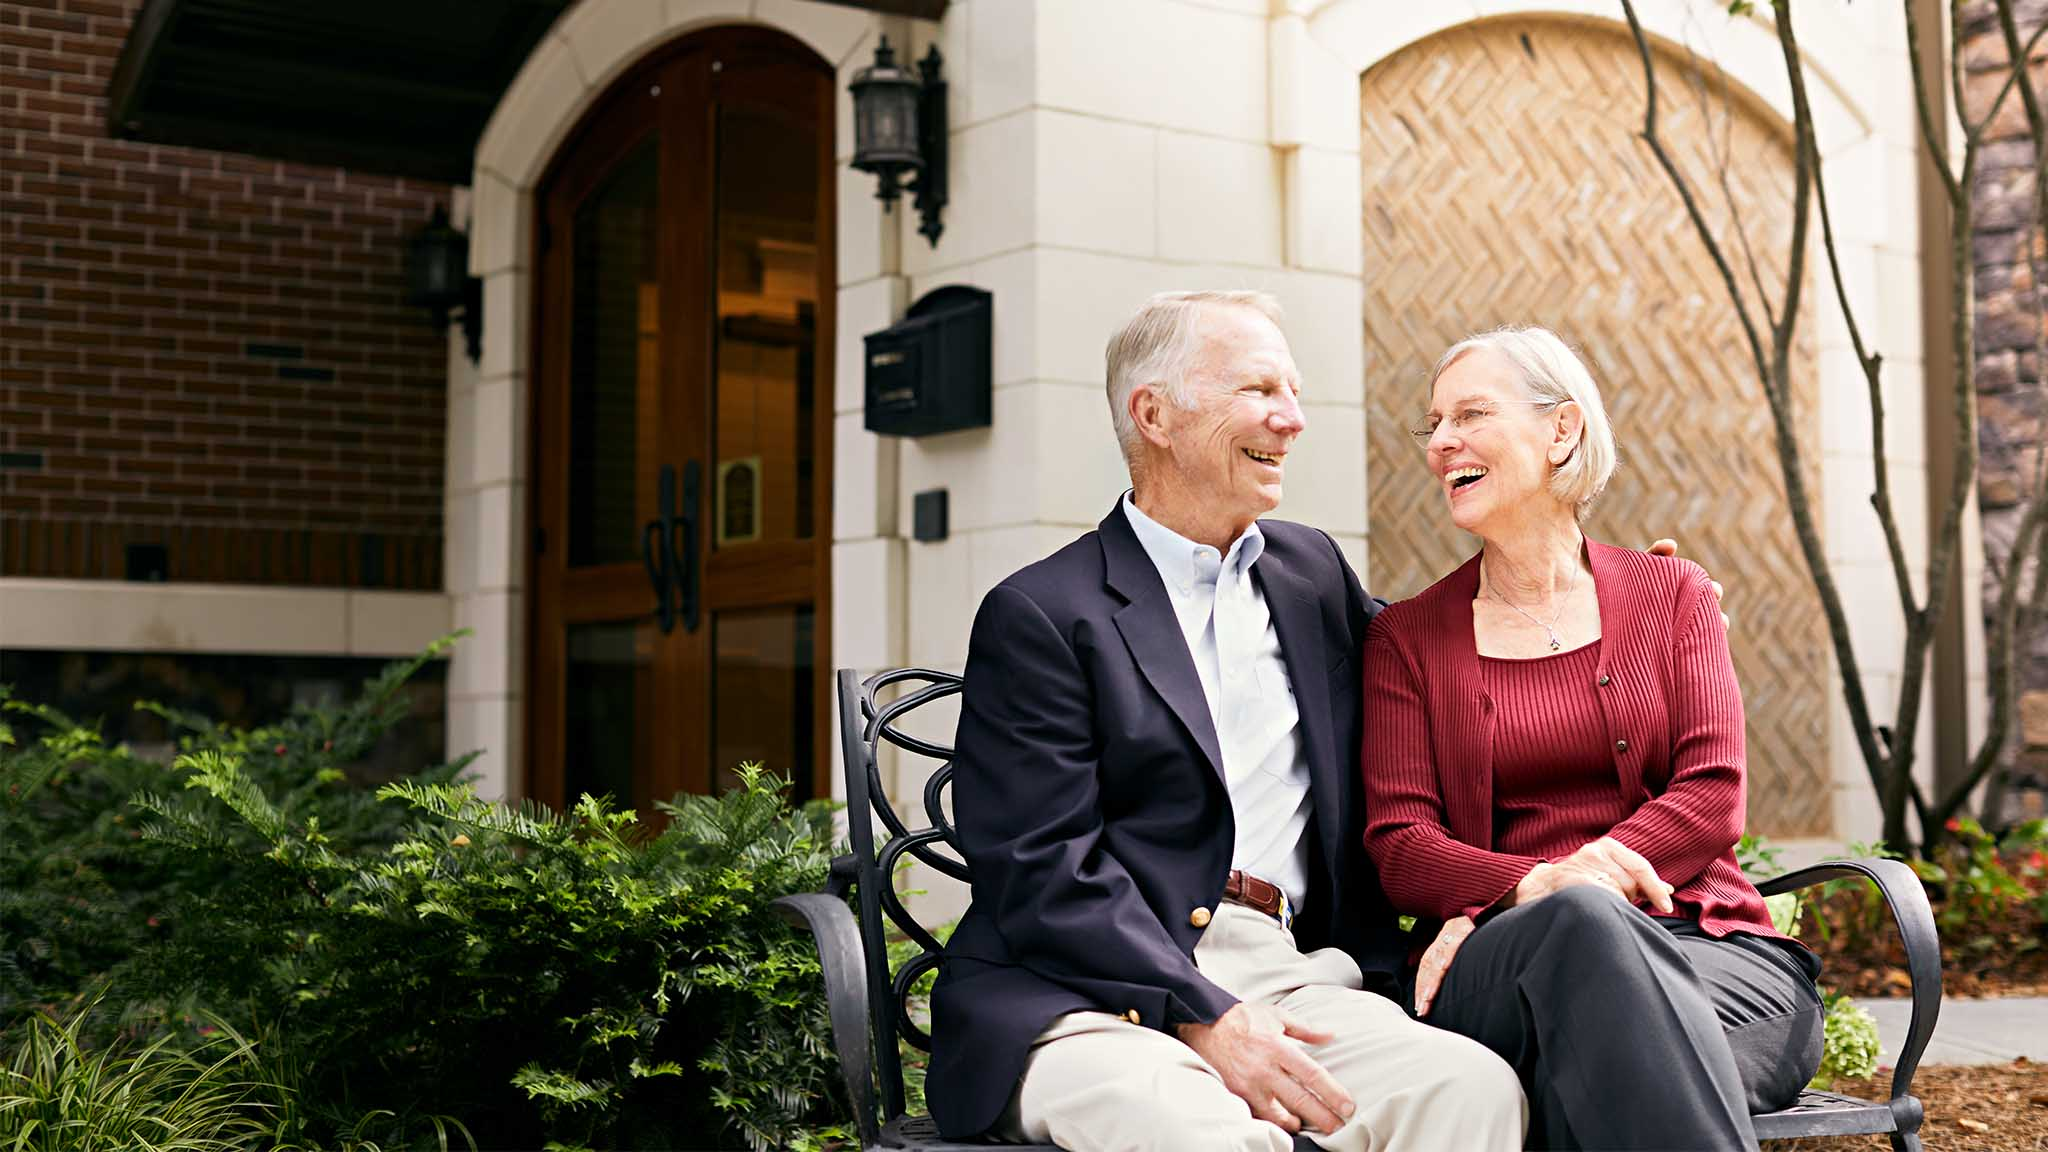 Atlanta lifestyle advertising photography showing retired senior couple